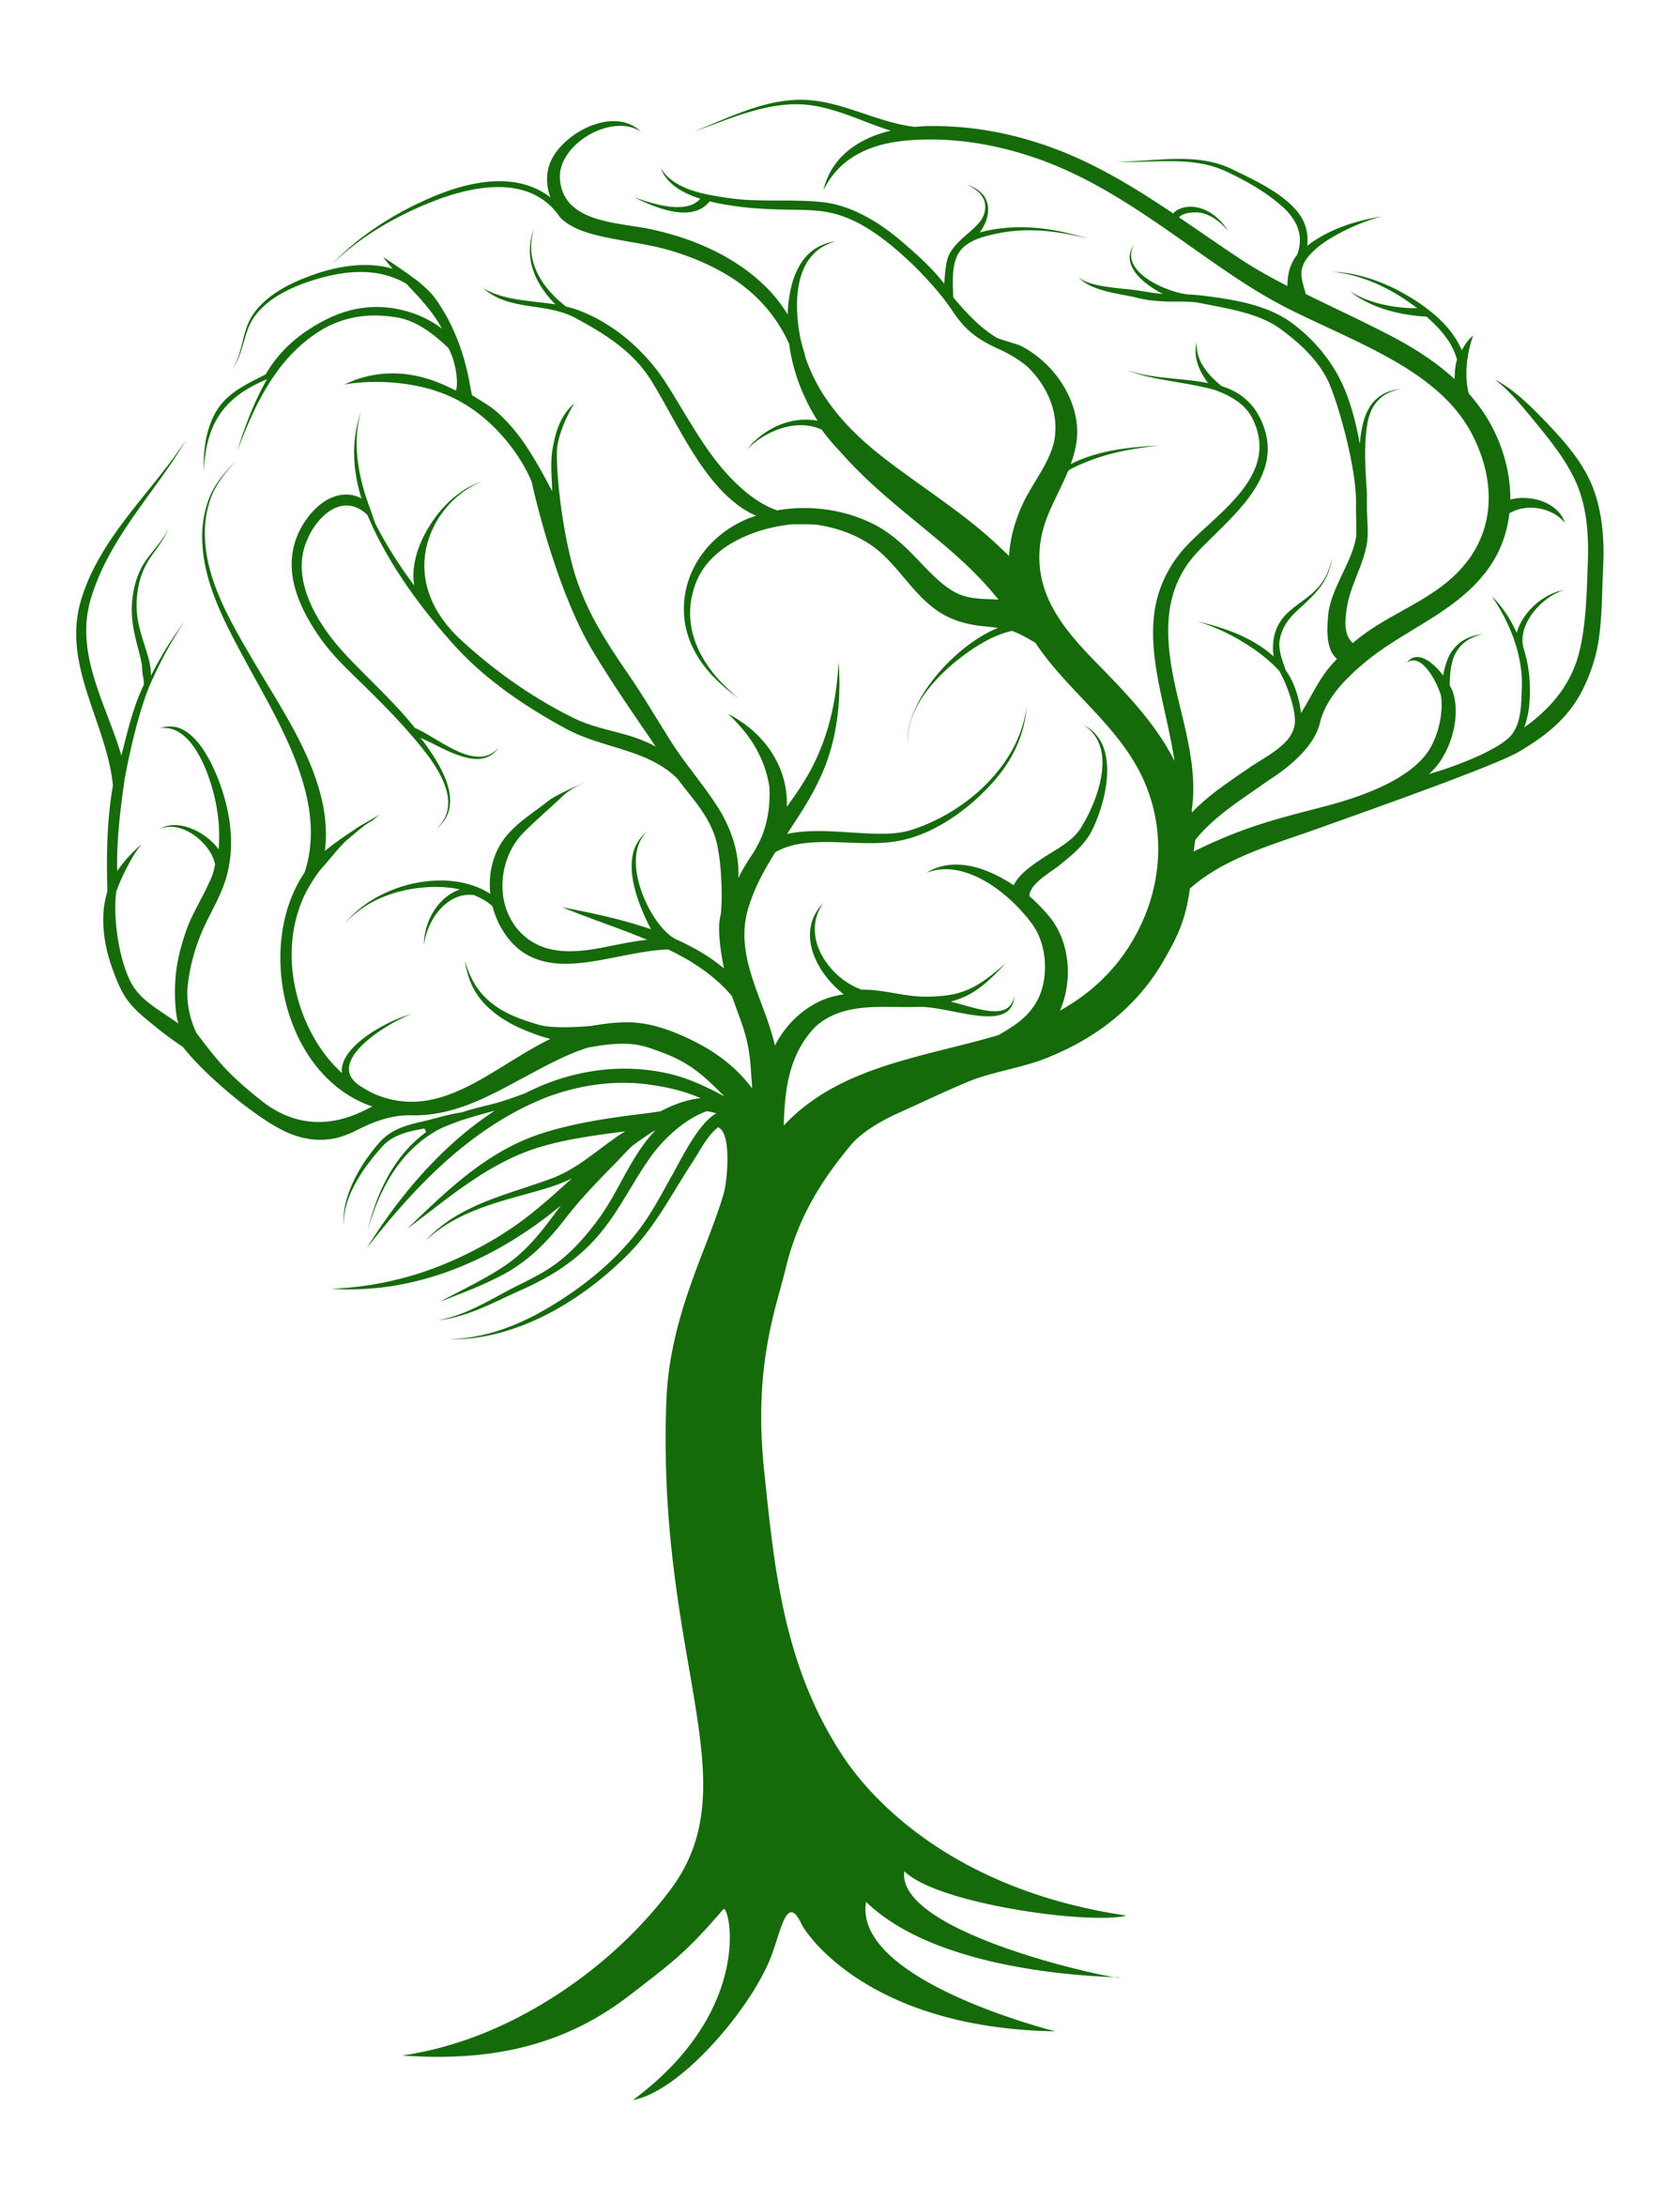 31812836 - brain tree concept of a tree with roots growing in the shape of a brain